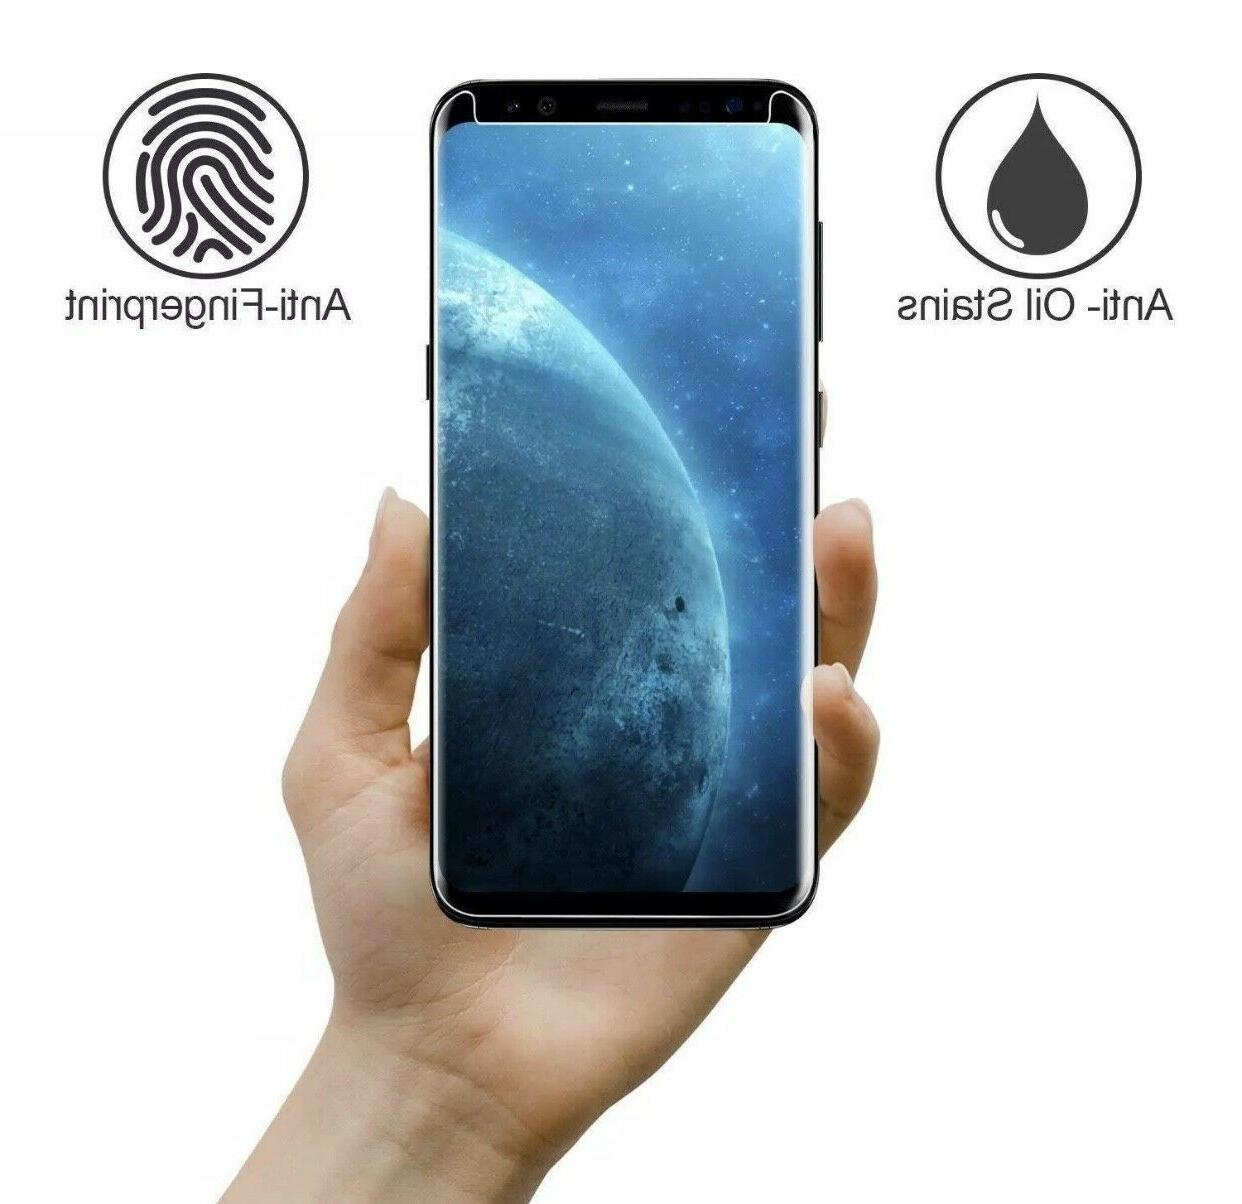 For Galaxy /Plus / S8 Note Protector Tempered Glass